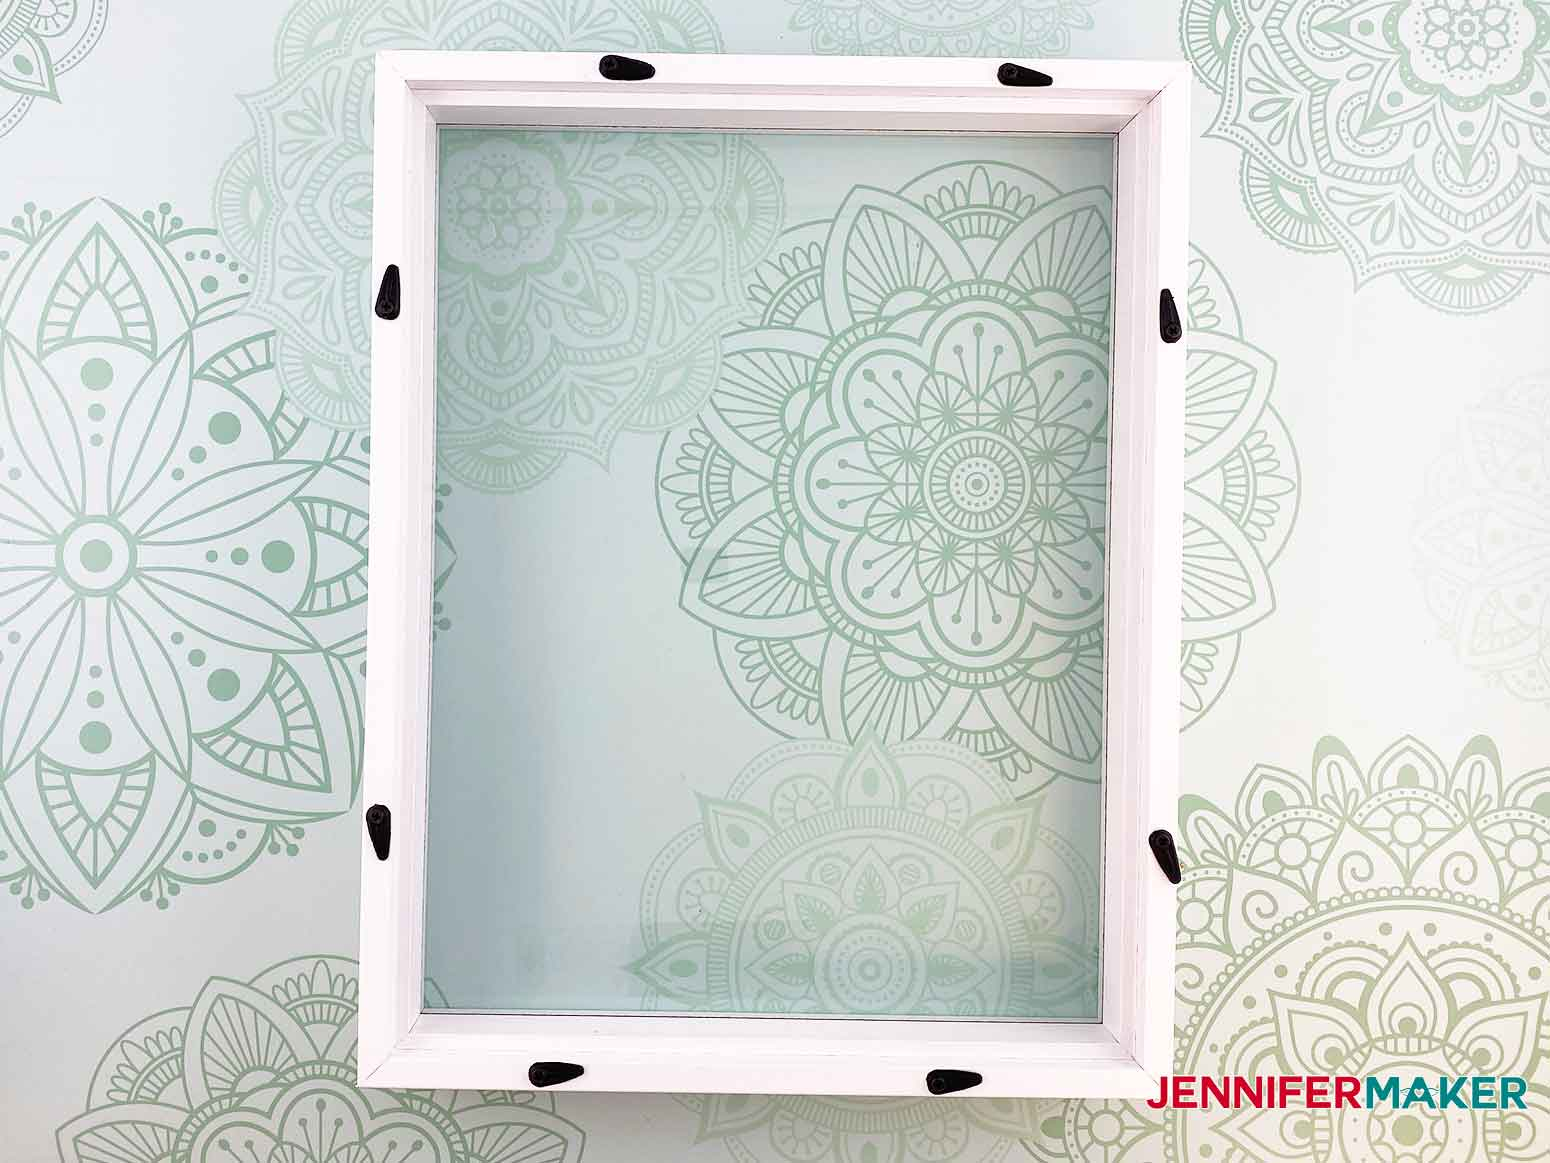 Clean the glass of your frame for the personalized unicorn frame